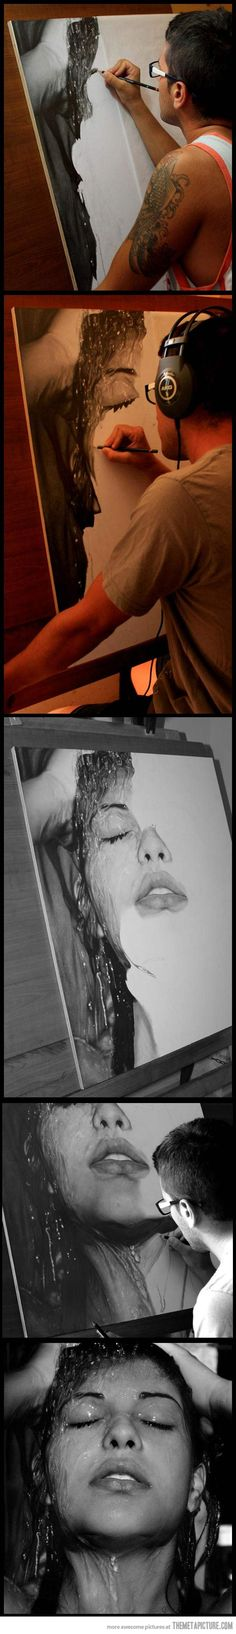 Funny pictures about Mind-Blowing photorealistic pencil drawing. Oh, and cool pics about Mind-Blowing photorealistic pencil drawing. Also, Mind-Blowing photorealistic pencil drawing. Pencil Art, Pencil Drawings, Art Drawings, Realistic Drawings, Art Beauté, Drawn Art, Wow Art, Art Plastique, Mind Blown